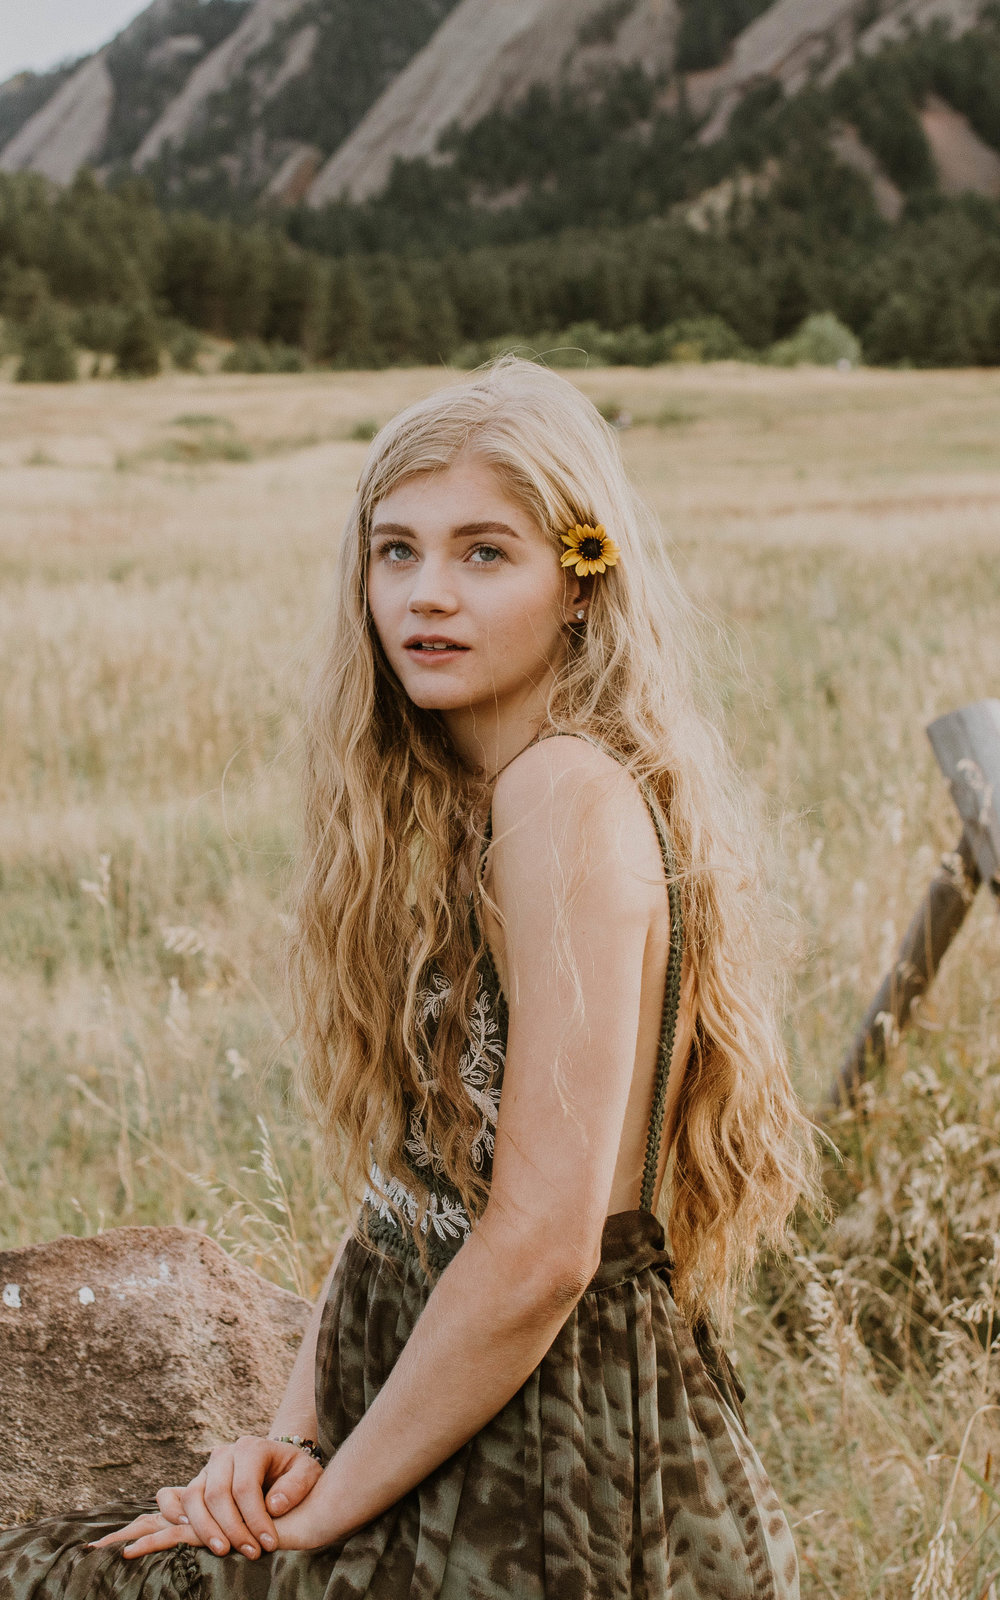 Makenna Haley by Haley Ivers | Mountain Outdoor Grad Photoshoot